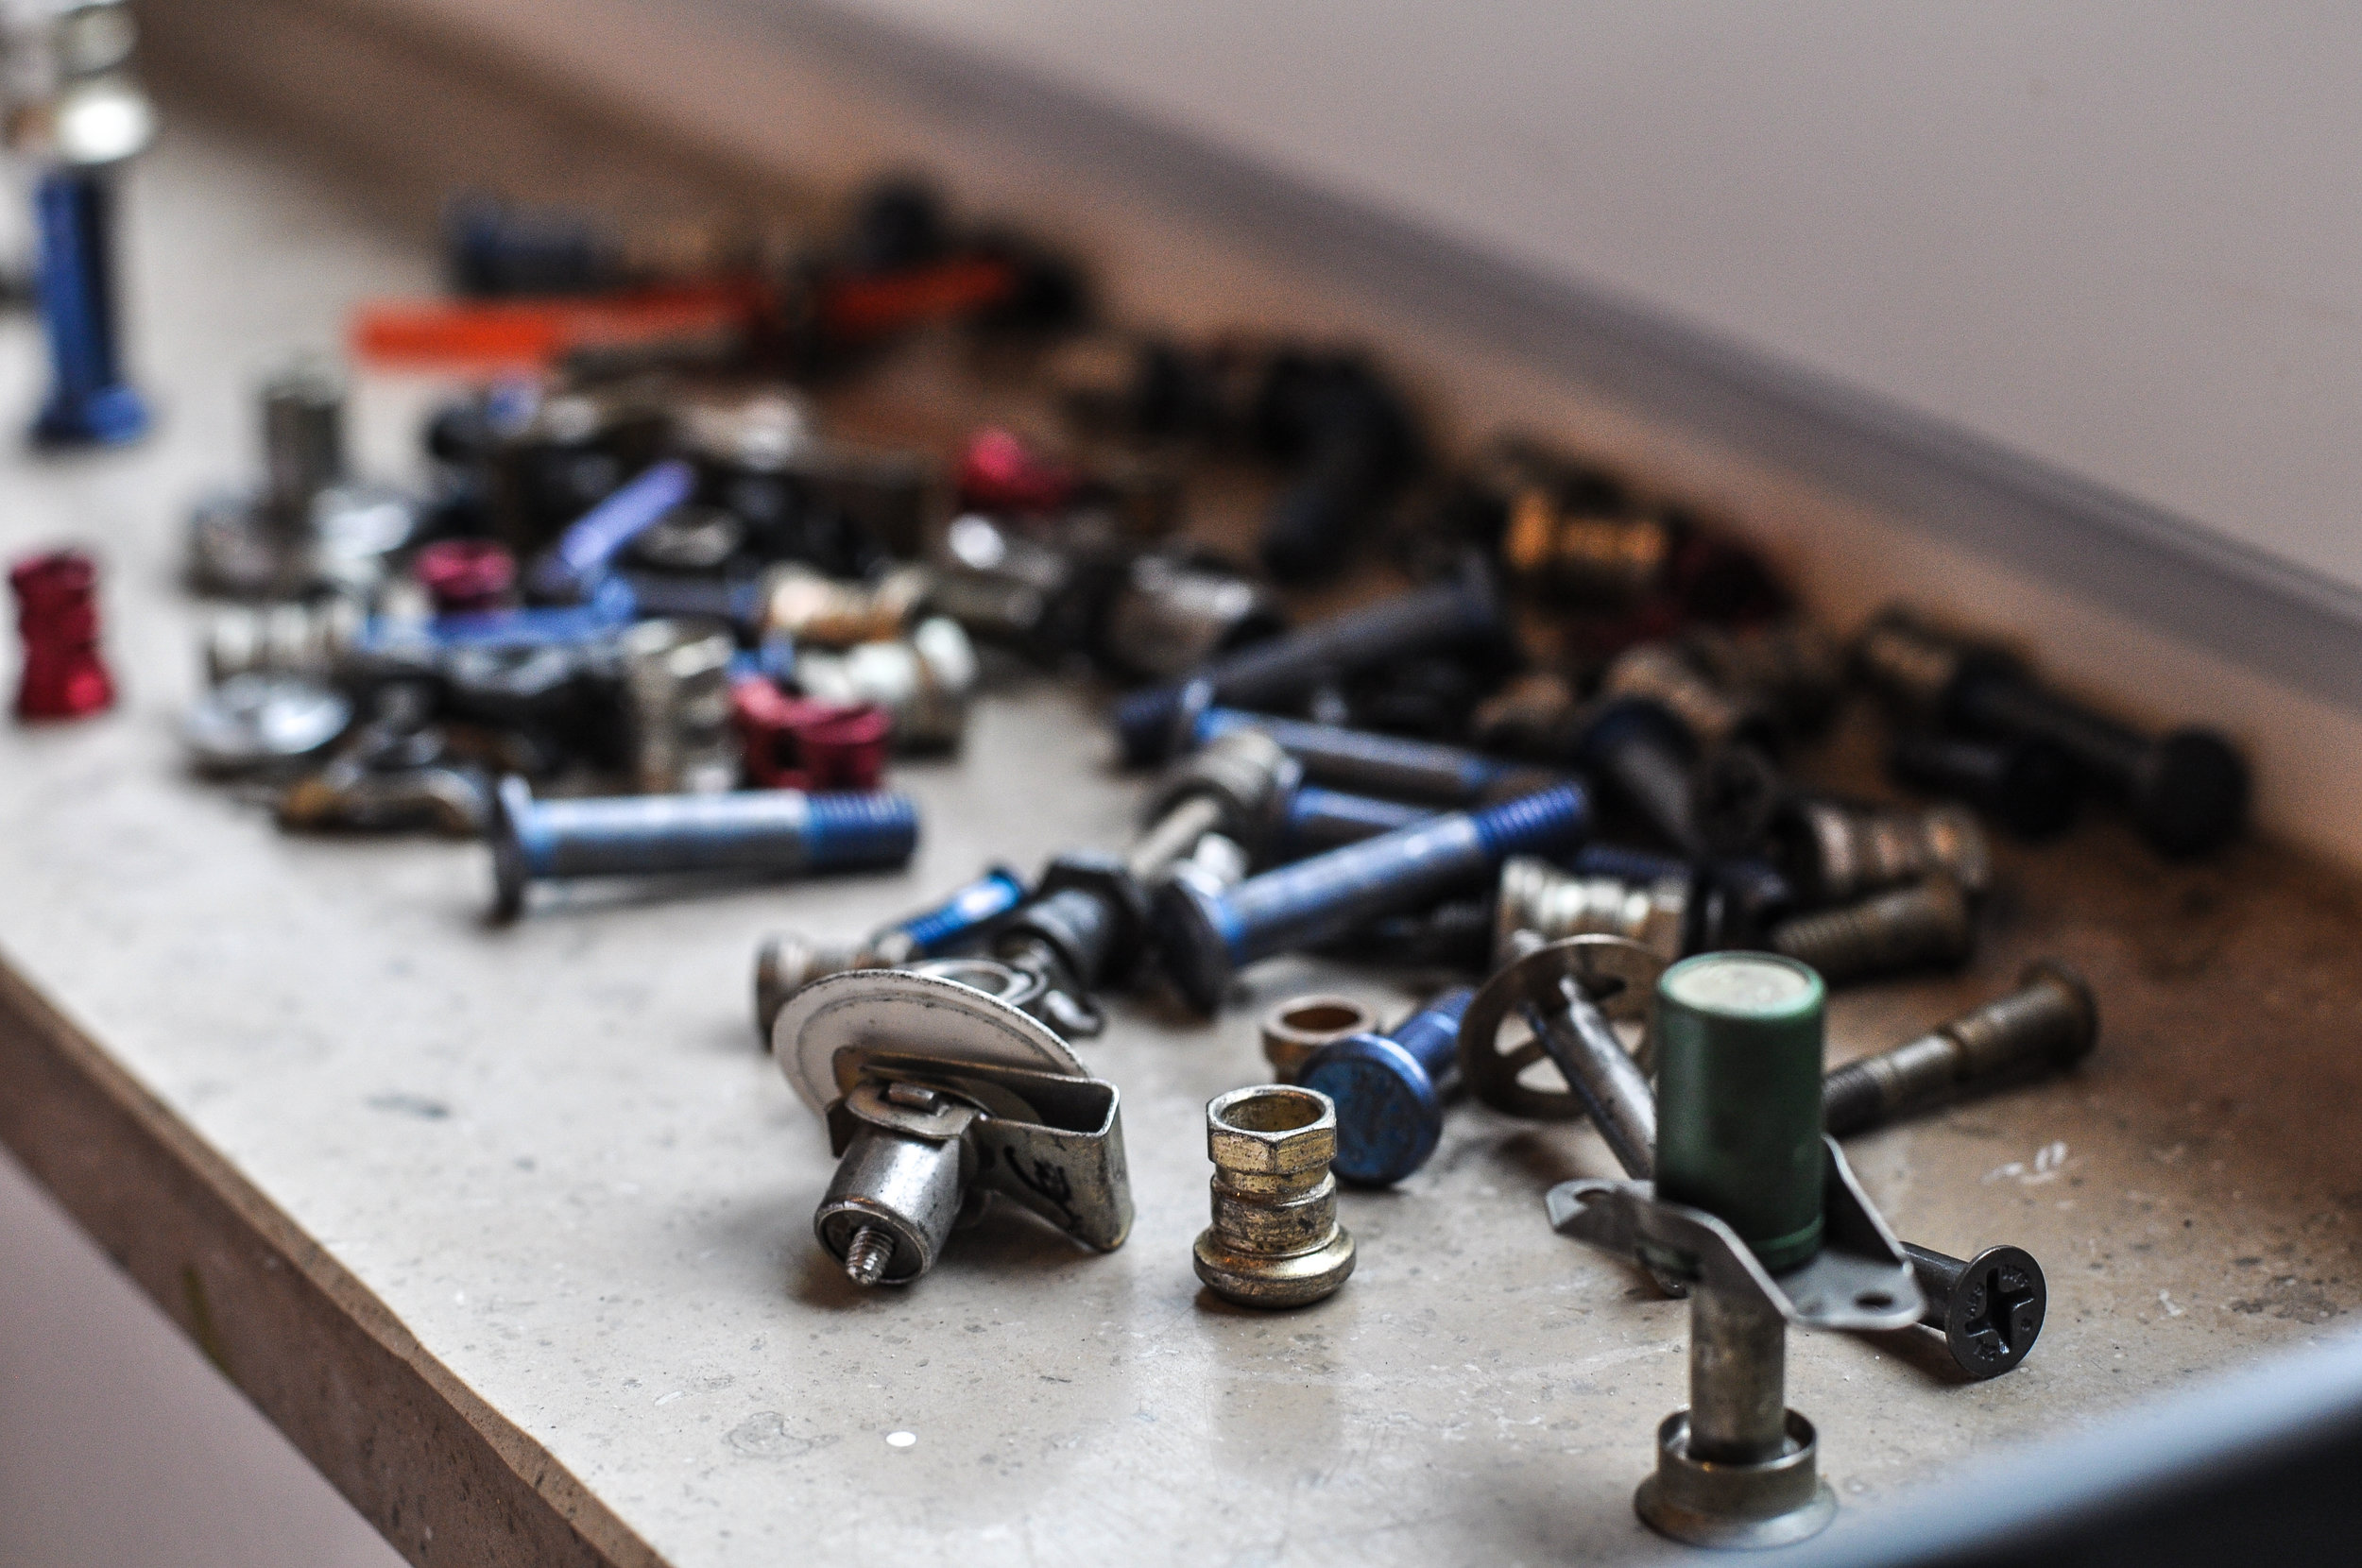 more than 1 million fasteners - are keeping a normal sized aircraft together and they all need to be fixed and checked